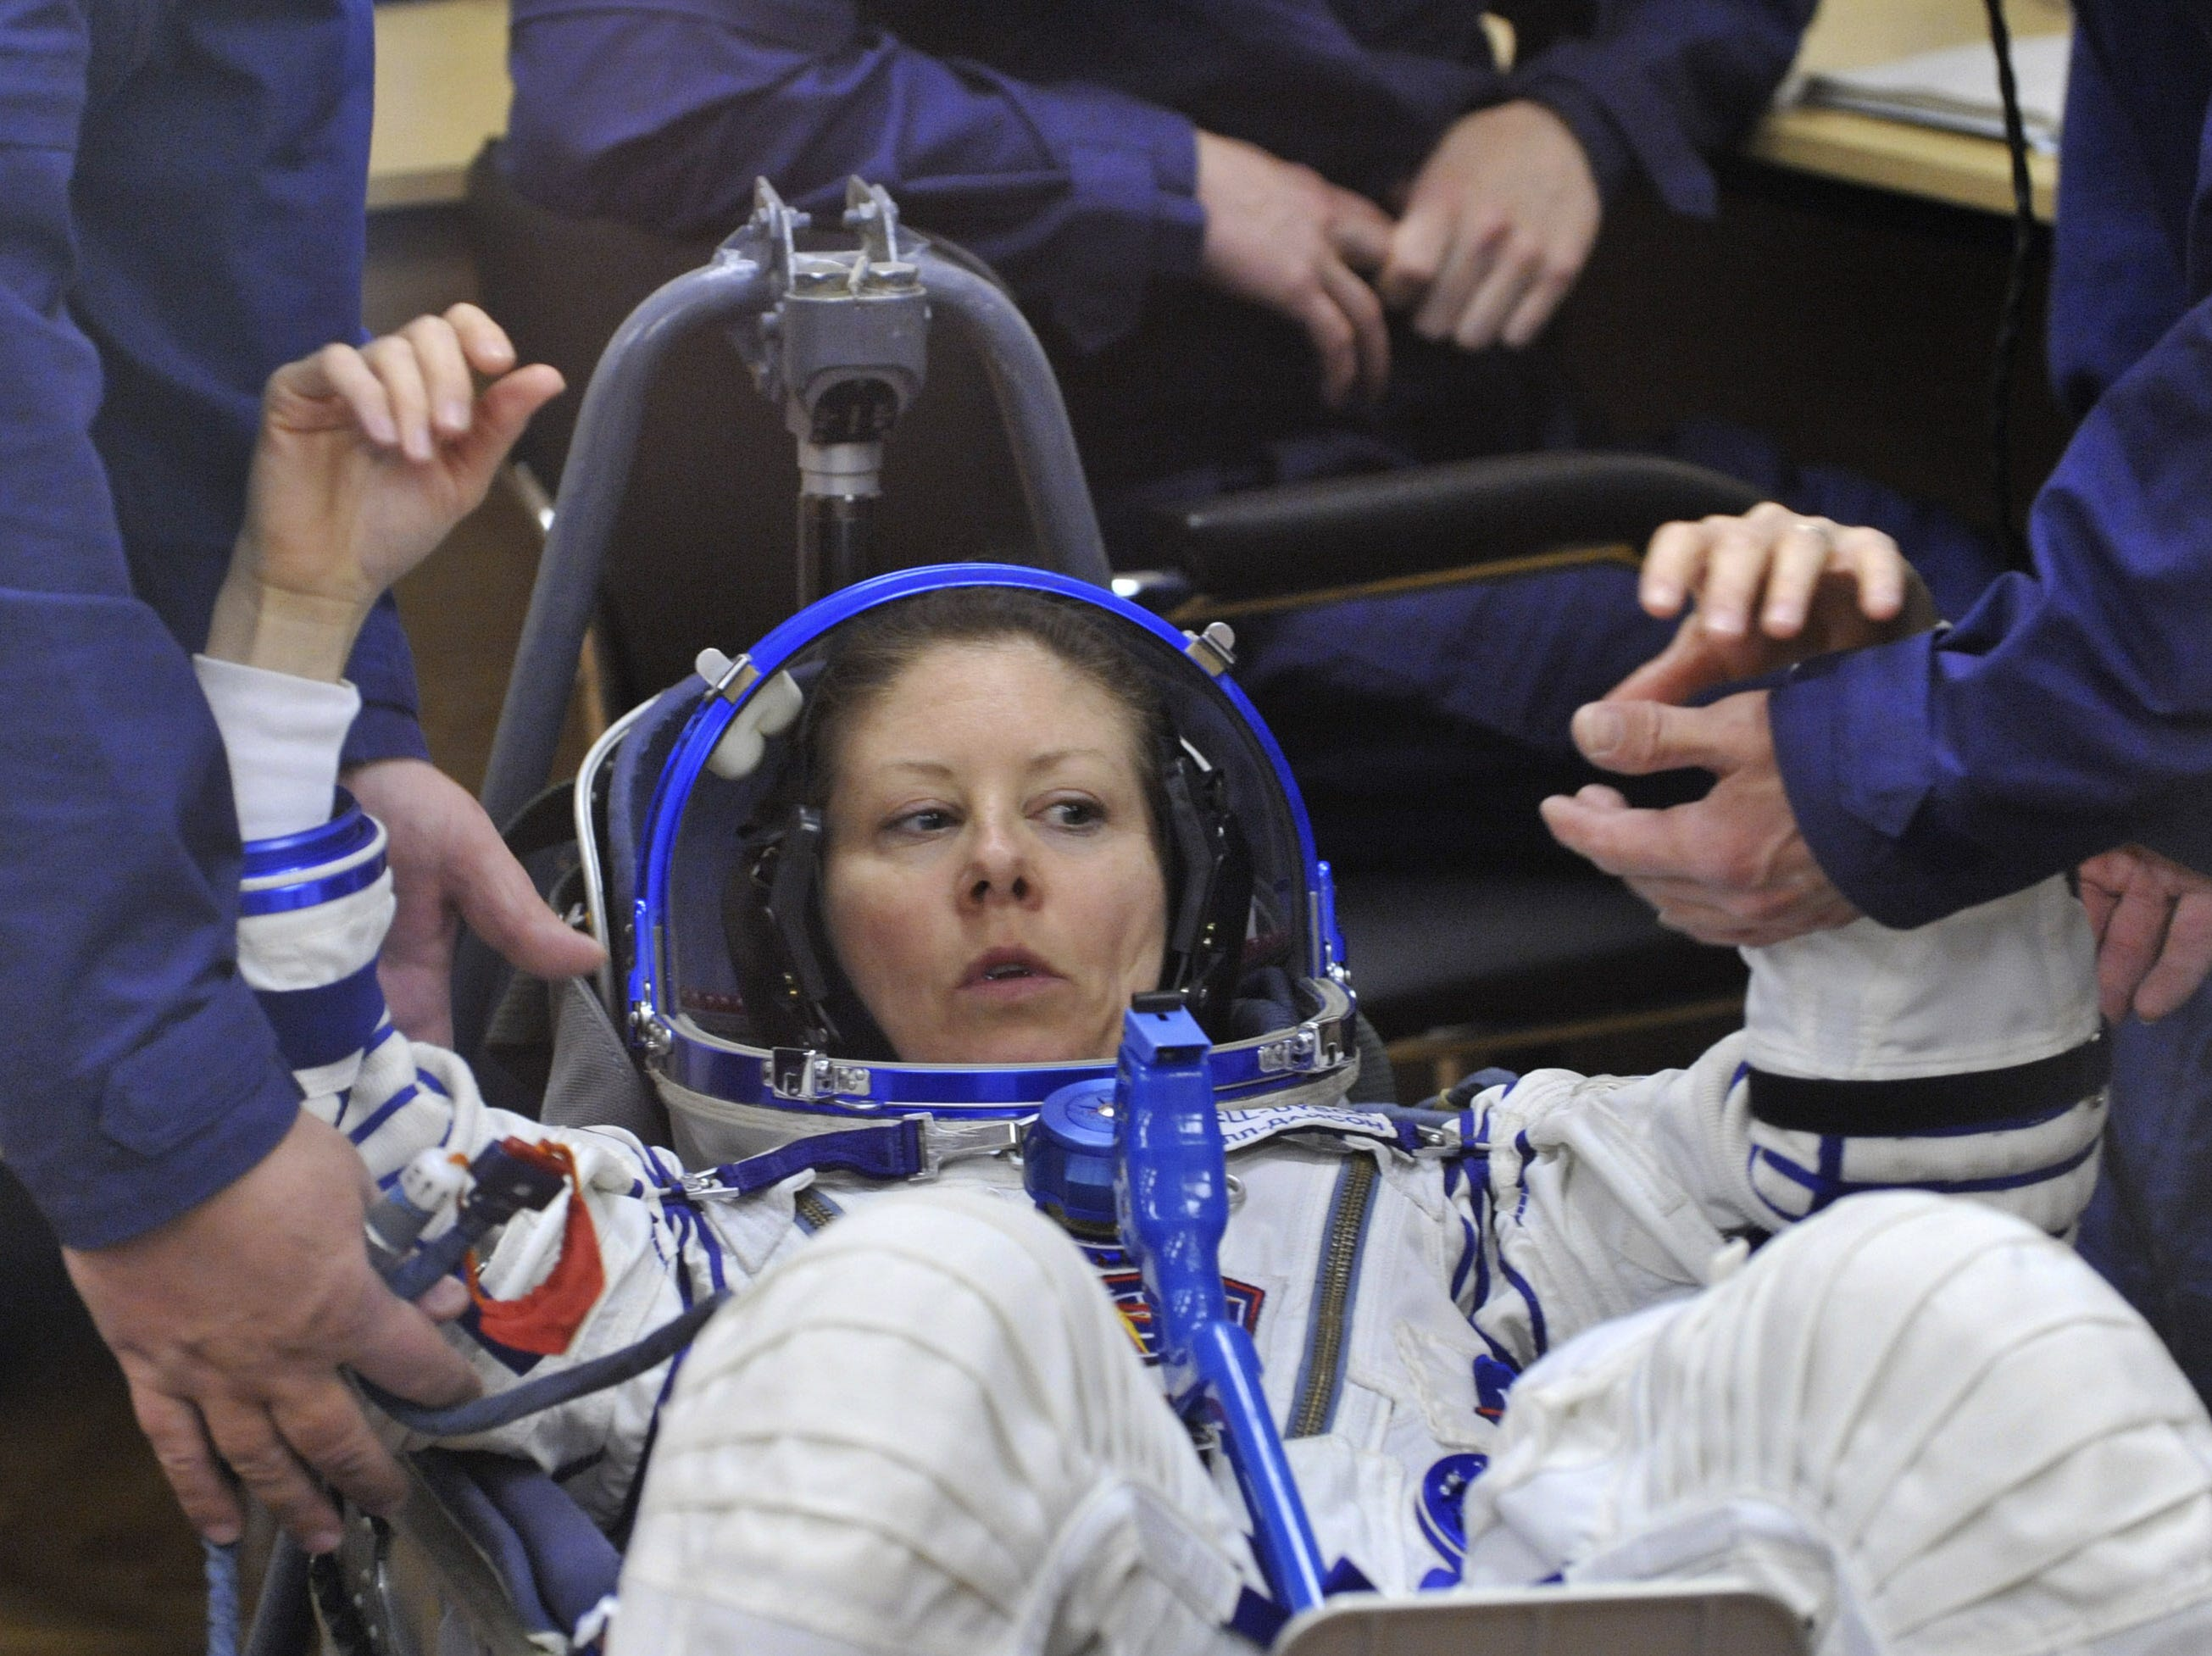 Astronaut Tracy Caldwell Dyson gets put into her space suit at Kazakhstan's Russian-leased Baikonur cosmodrome on April 2, 2010.